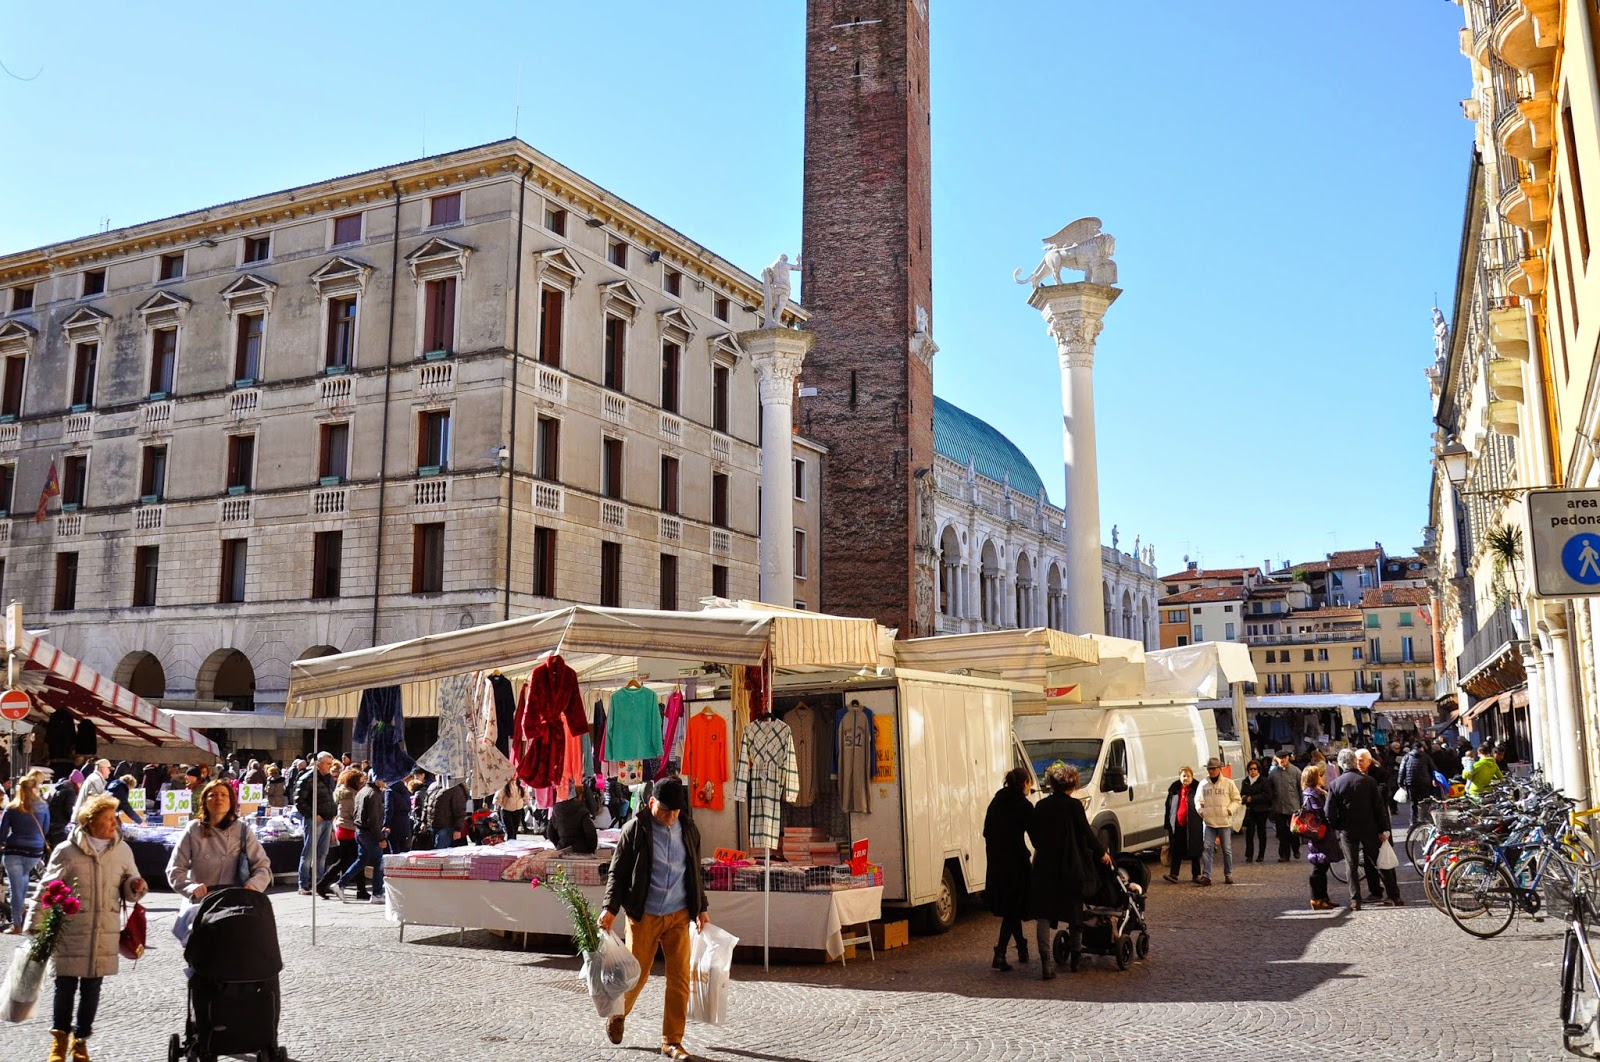 The Thursday market at Piazza dei Signori, Vicenza, Italy